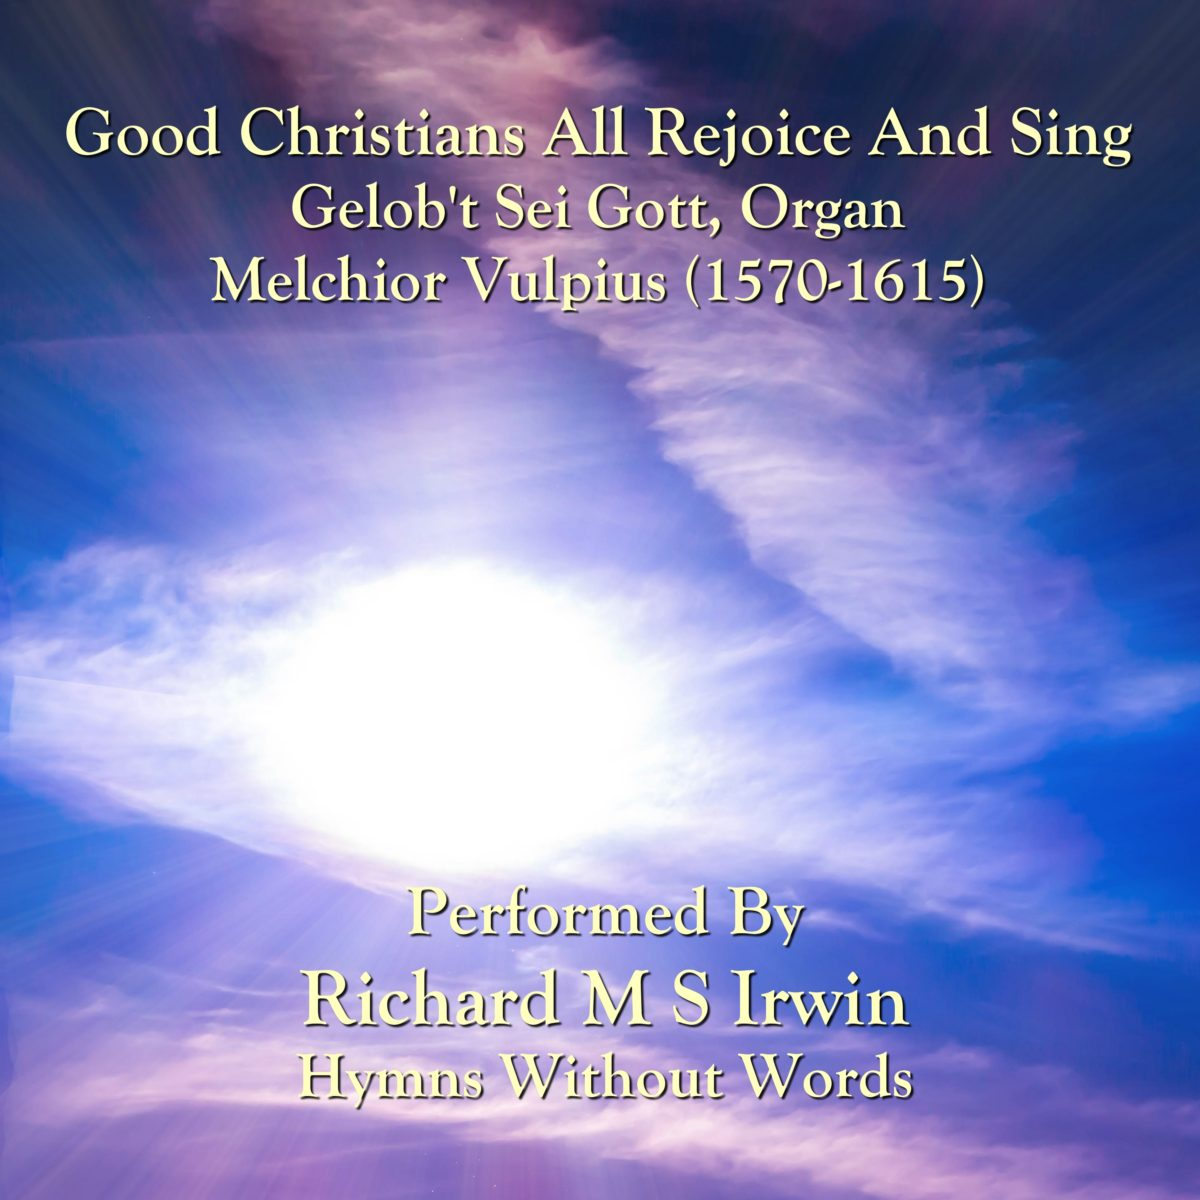 Good Christians All Rejoice And Sing (Gelob'T Sei Gott, Organ 4 Verses))